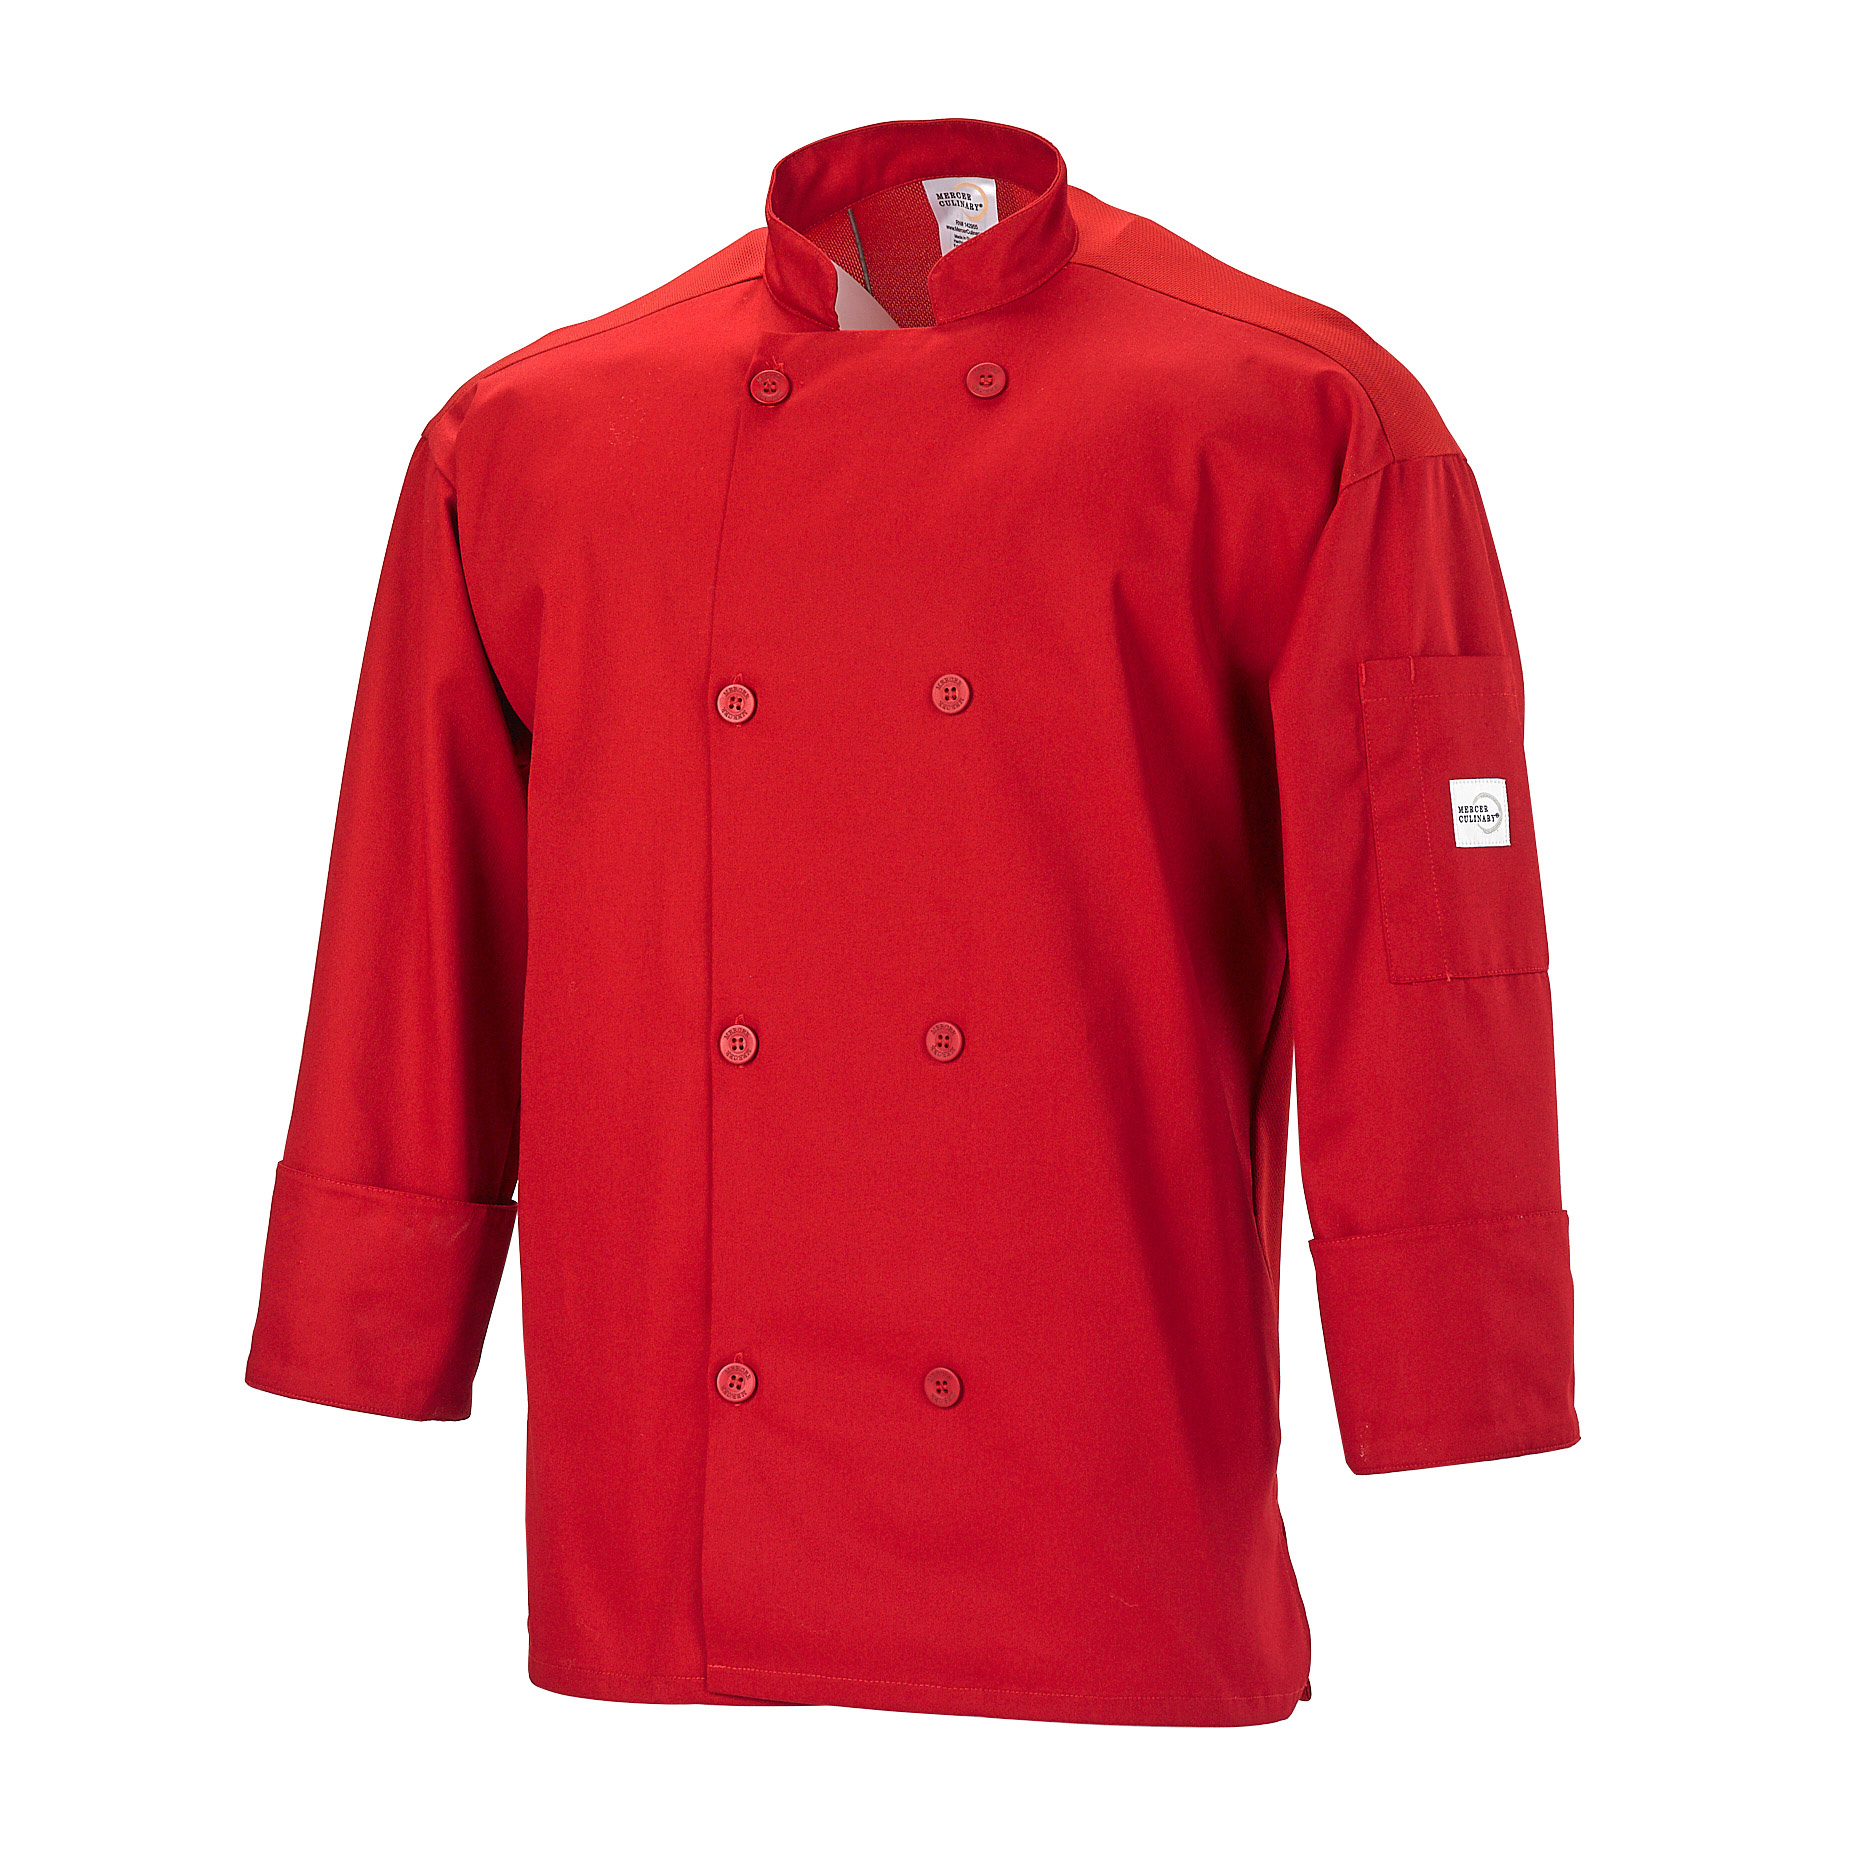 Mercer Culinary M60017RDL chef's coat